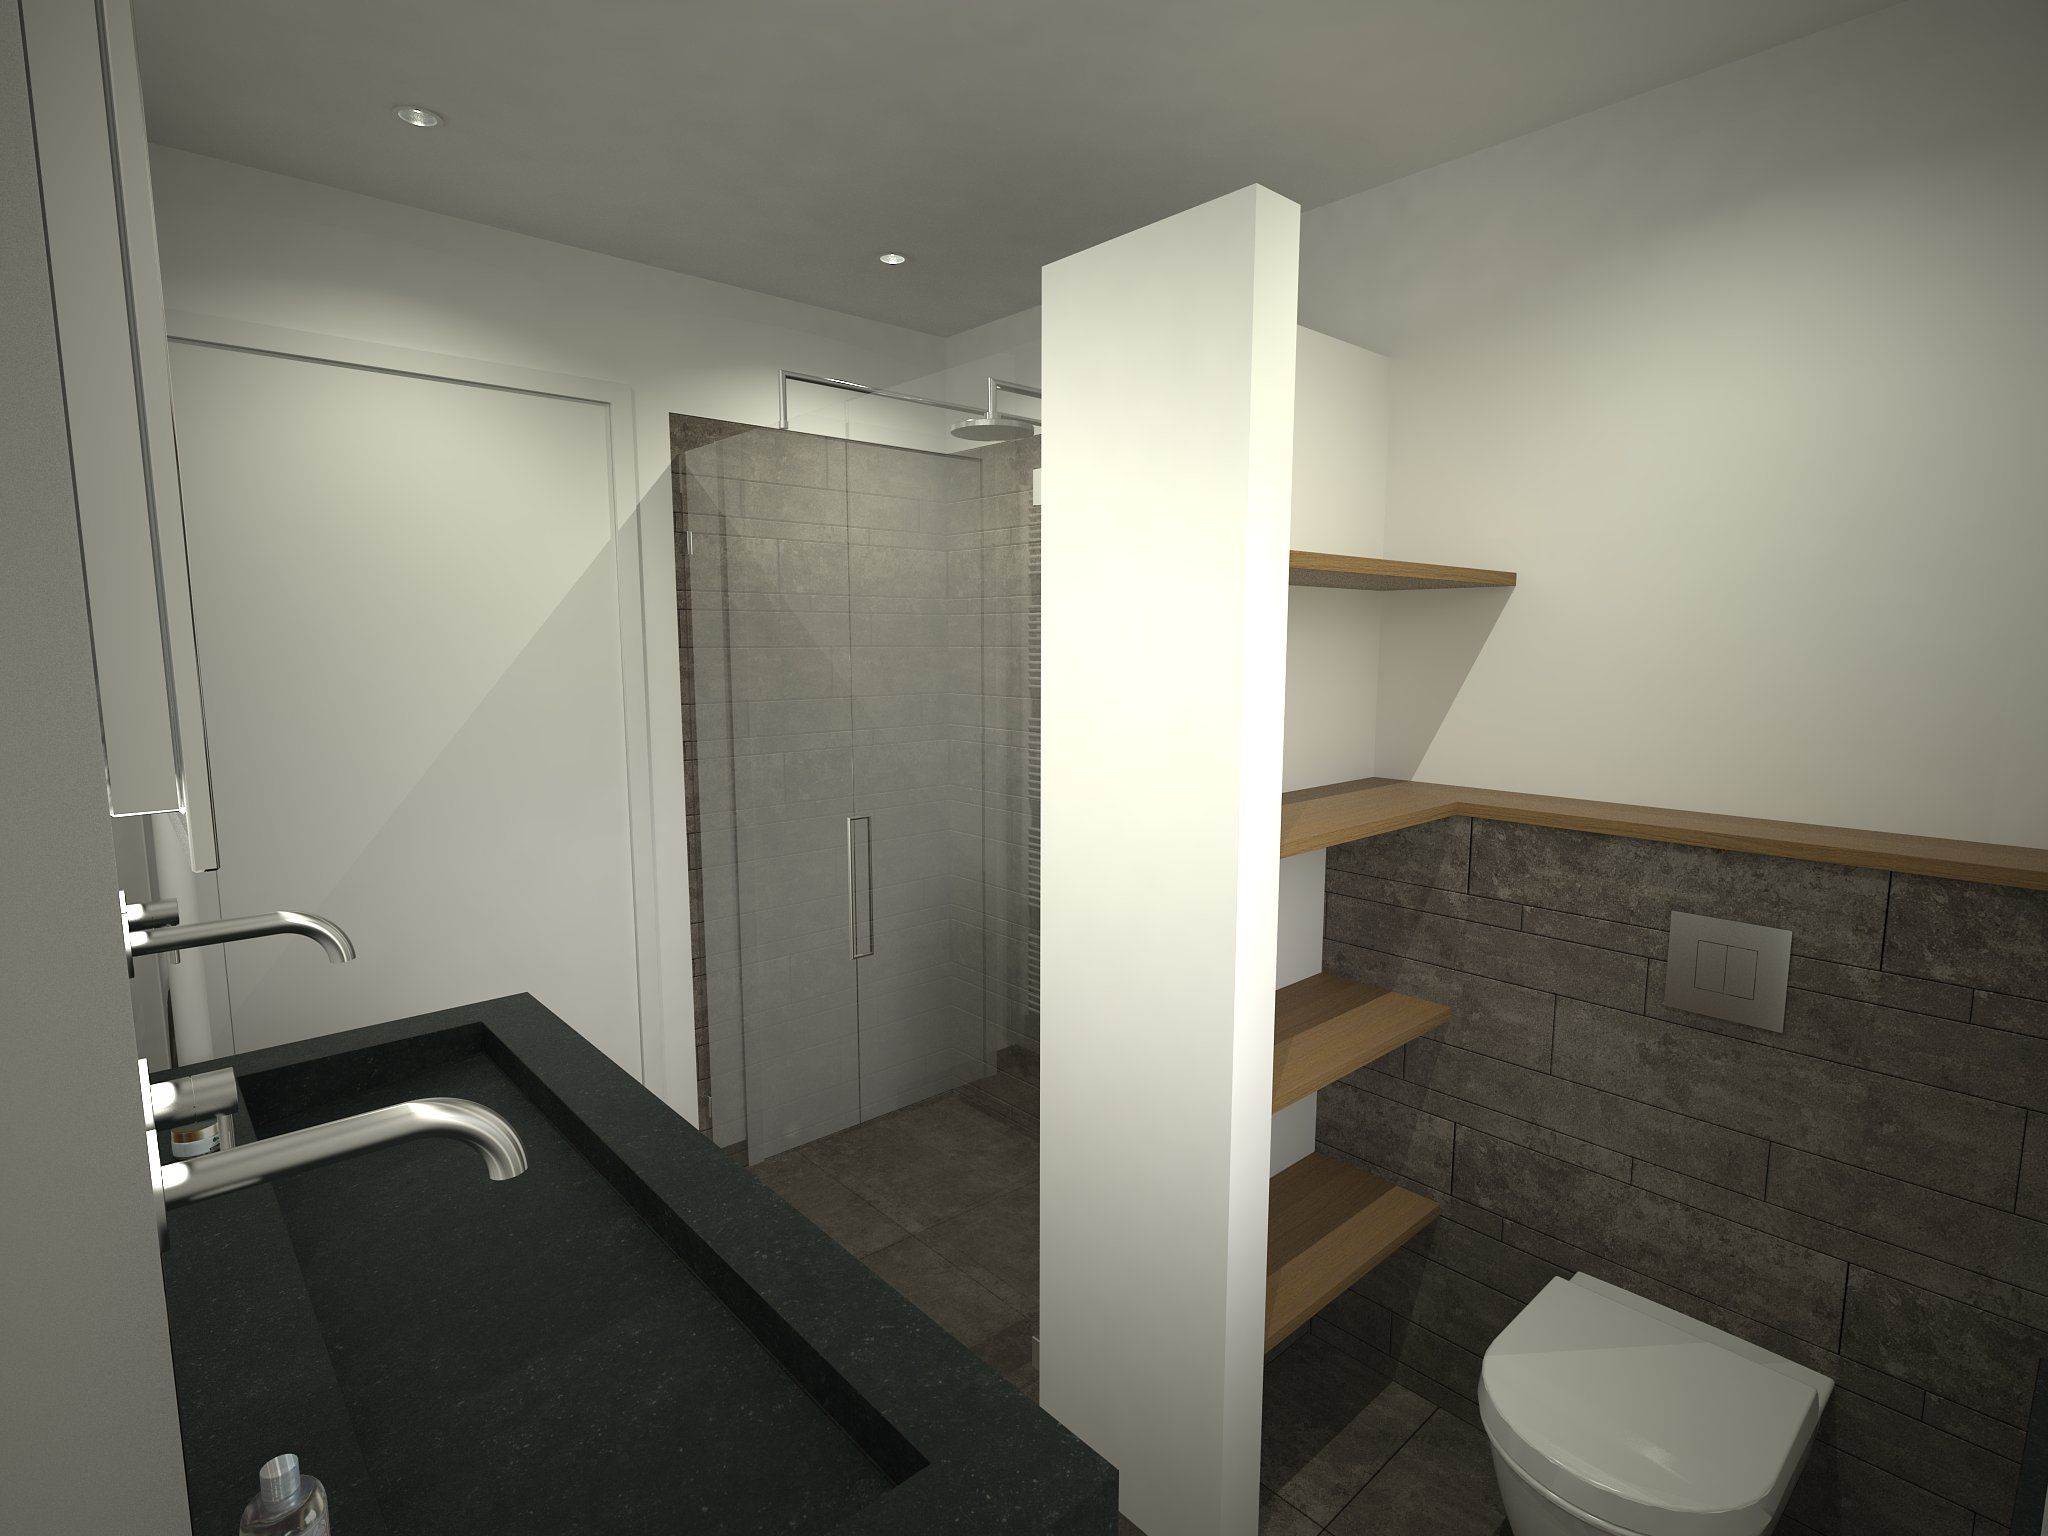 1000 images about badkamer on pinterest toilets messages and tuin